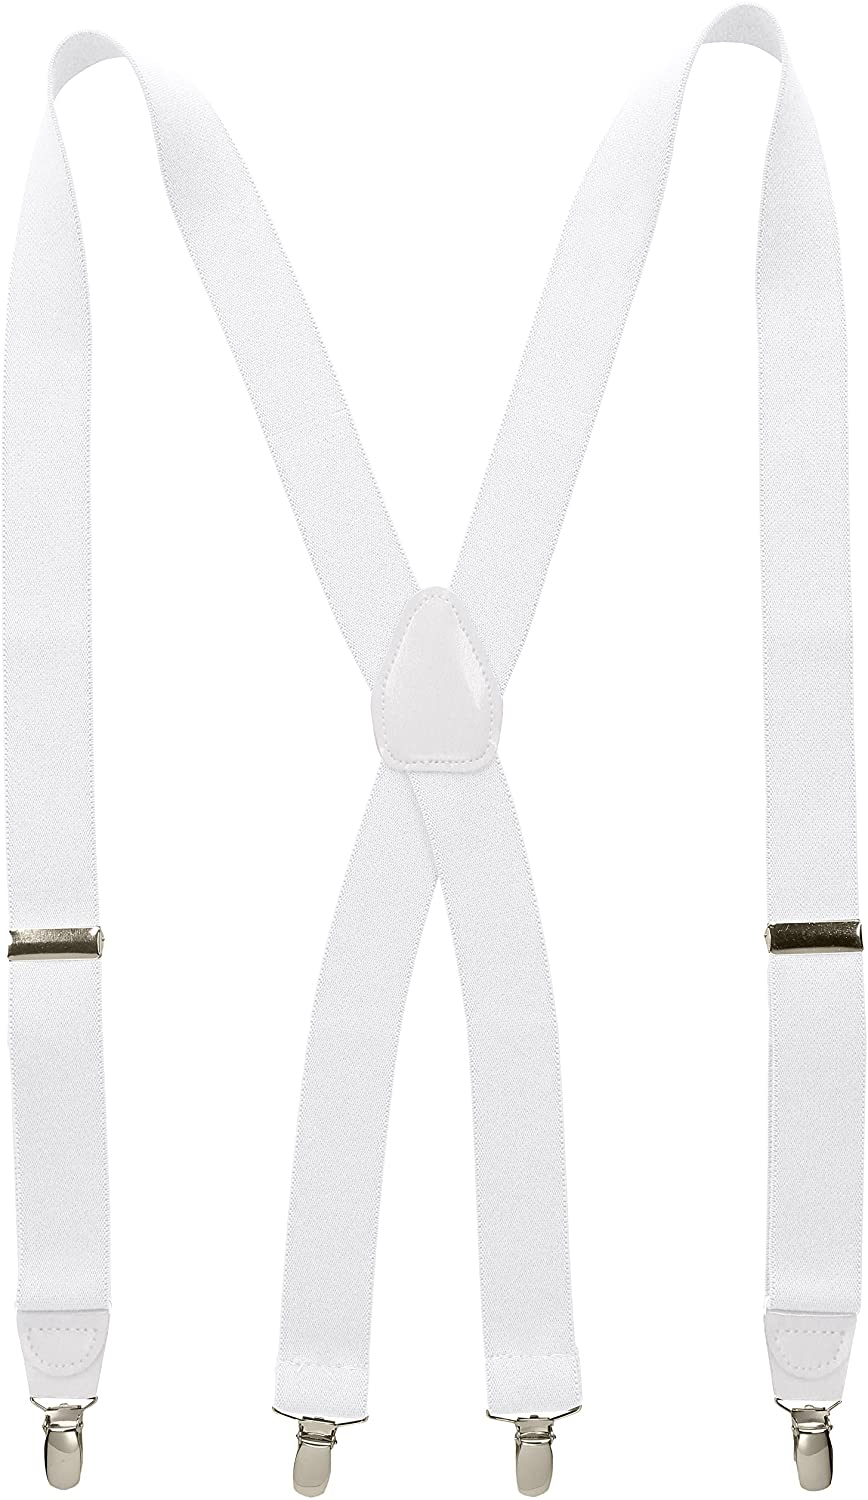 Wembley Men's 32 mm Solid Stretch Suspender